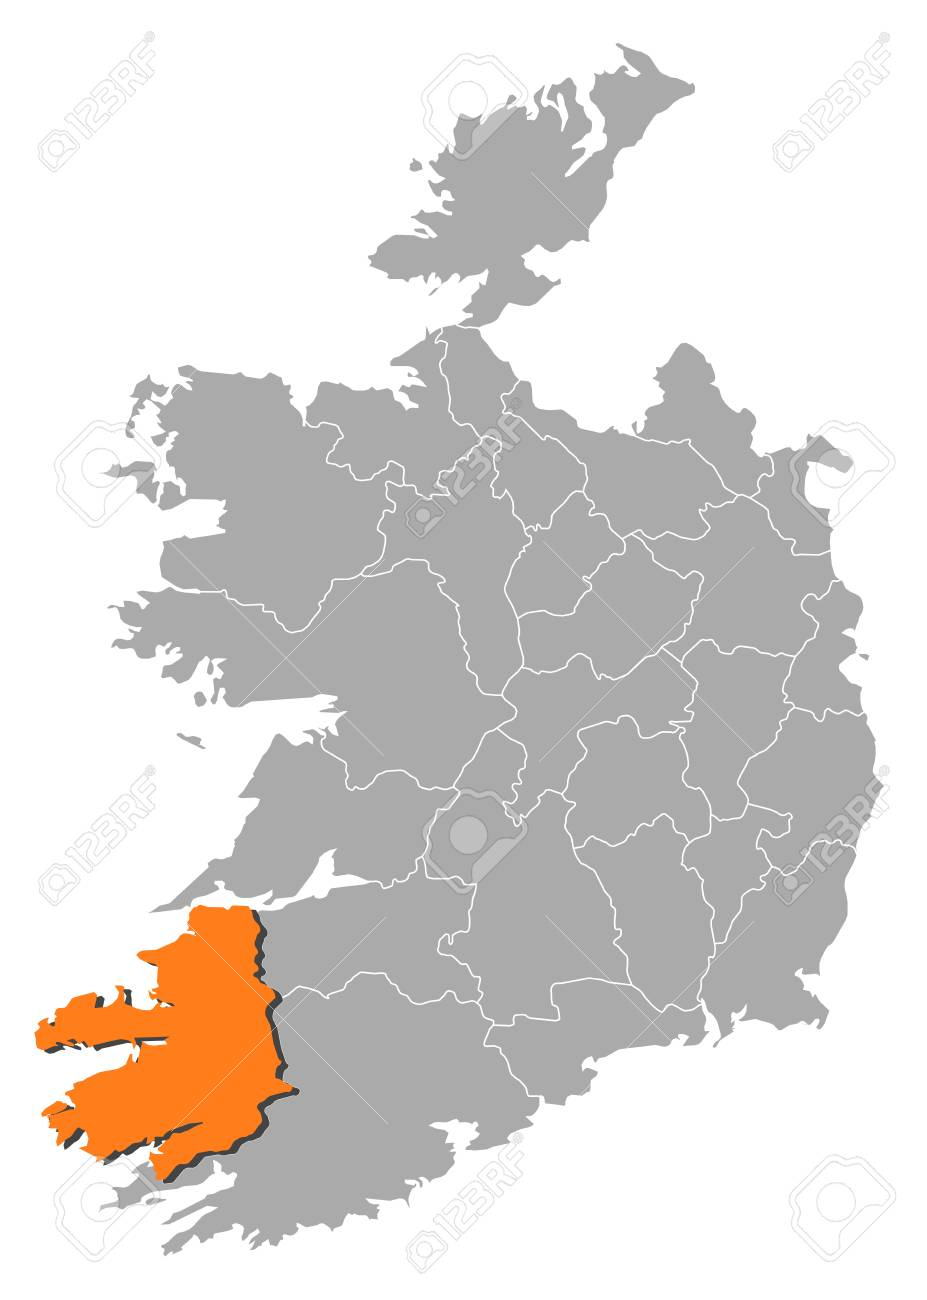 Map Of Ireland Kerry Region.Map Of Ireland With The Provinces Kerry Is Highlighted By Orange